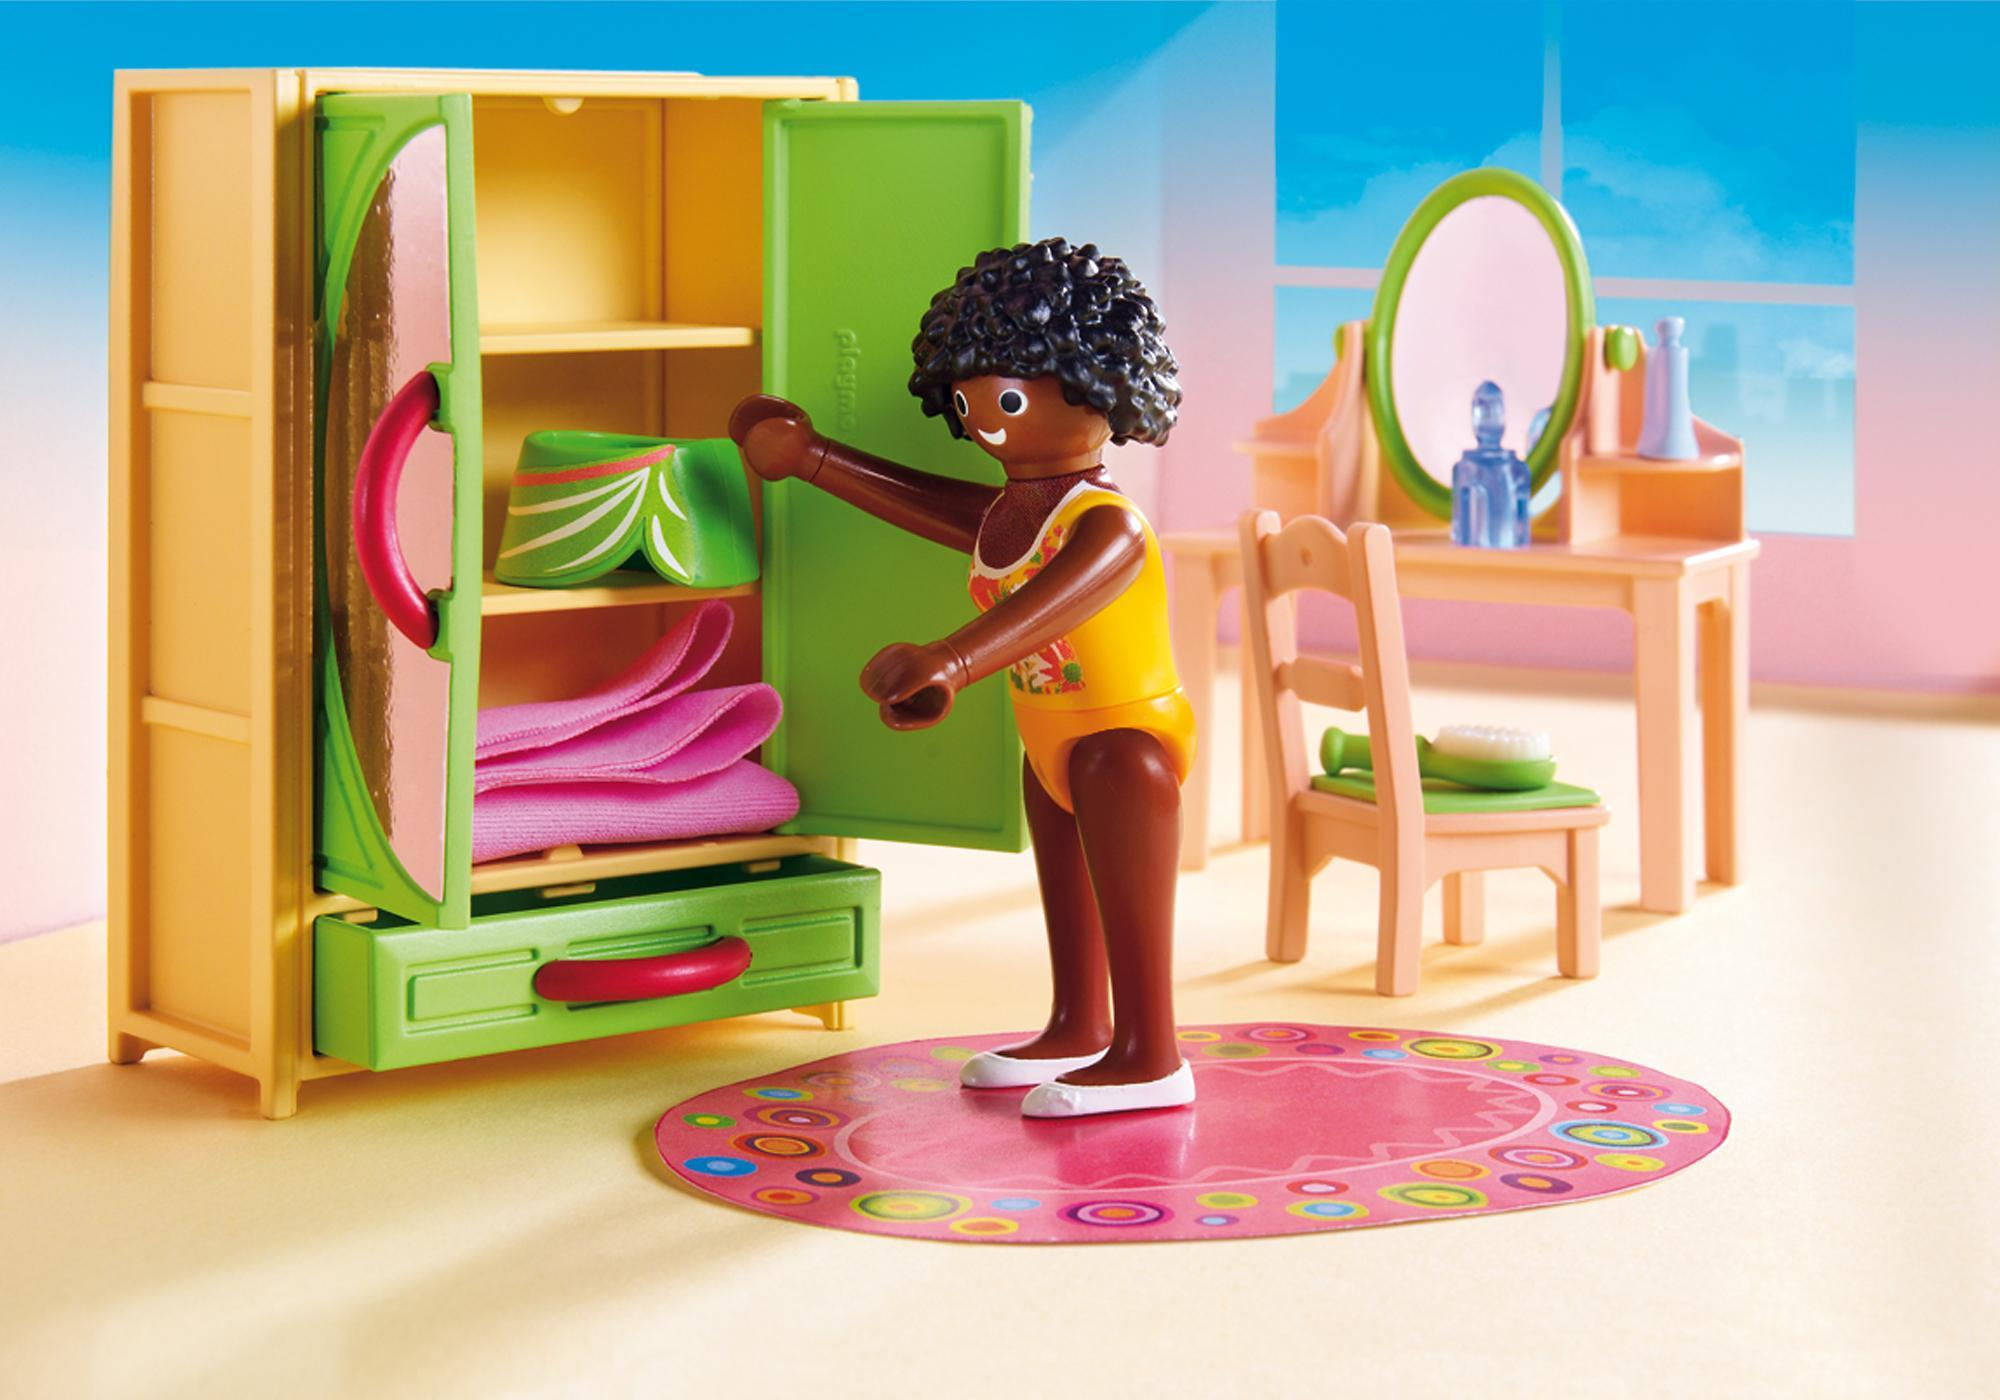 http://media.playmobil.com/i/playmobil/5309_product_extra1/Master Bedroom